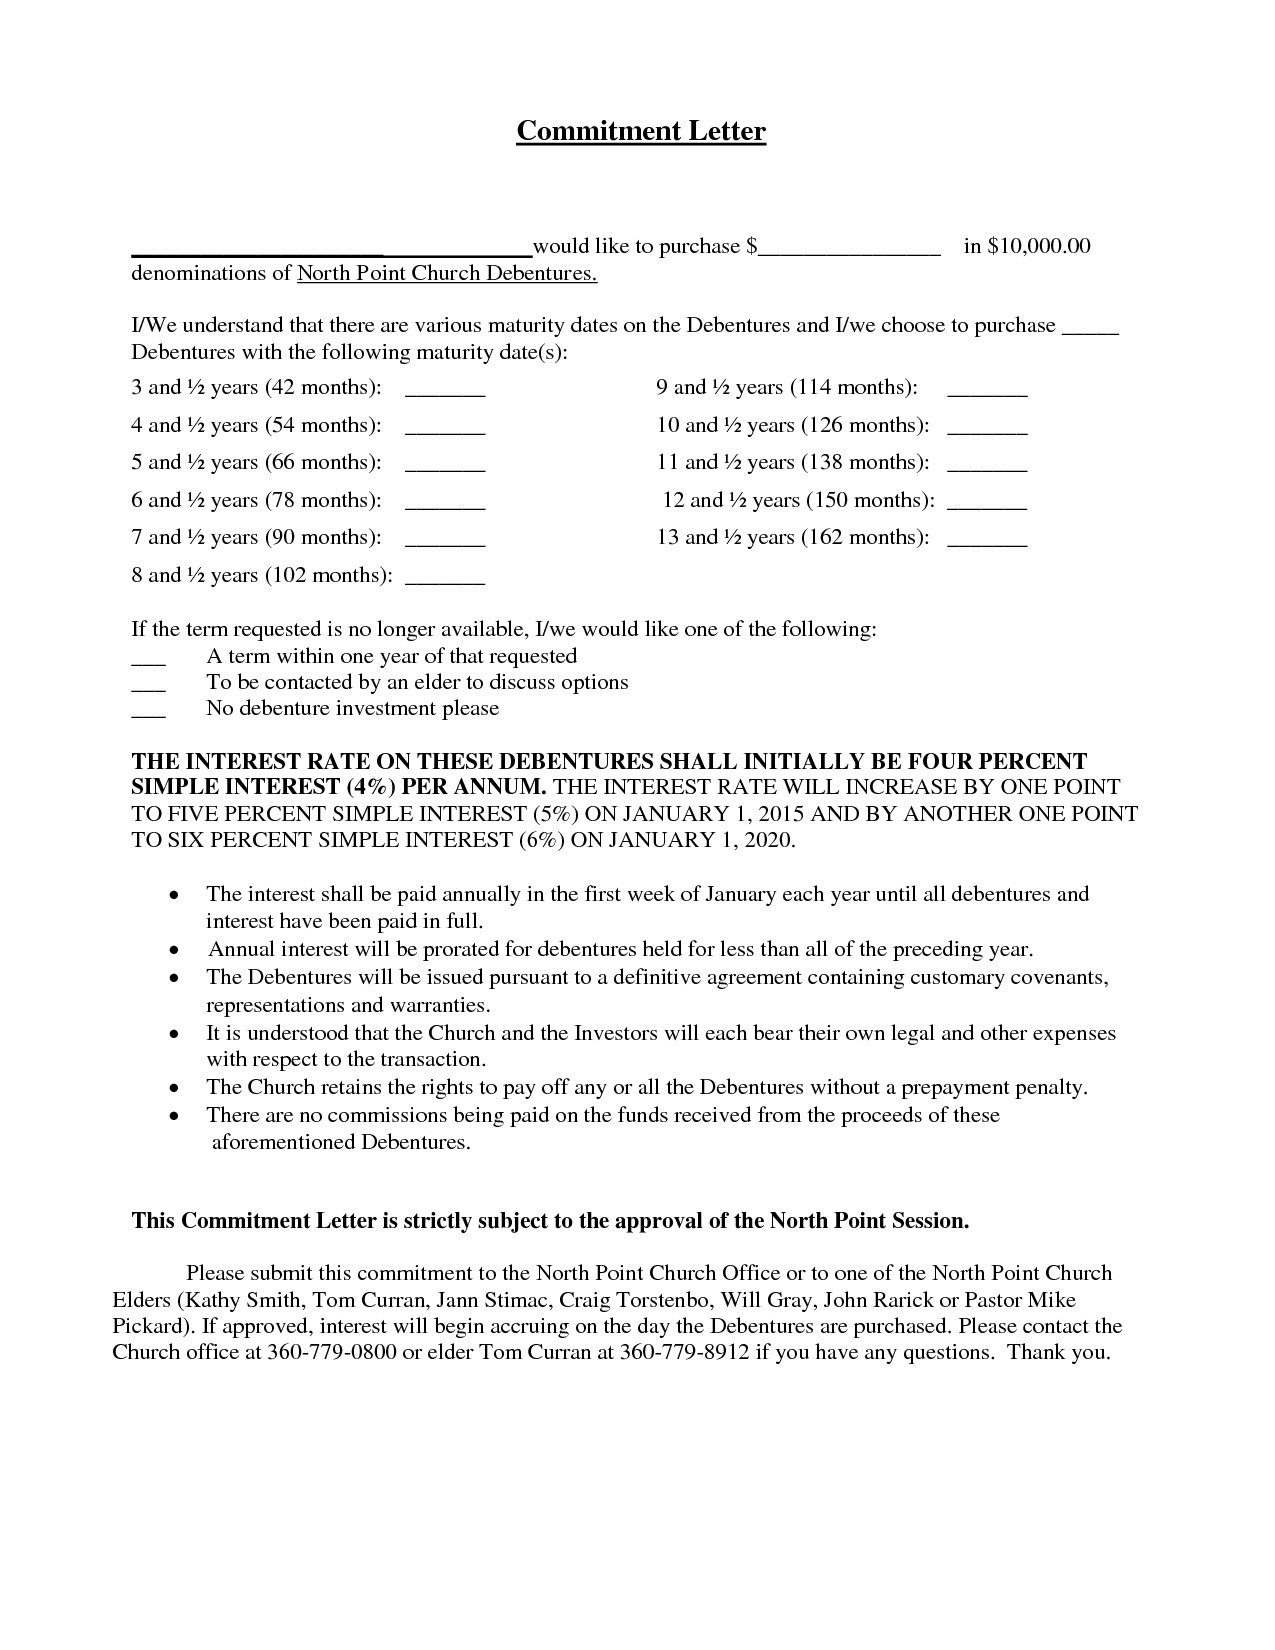 Quicken Loans Gift Letter Template on for house buying, certificate presentation, mobile auto, home loan, thank you, real estate, mortgage for fha, fannie mae, monthly money,